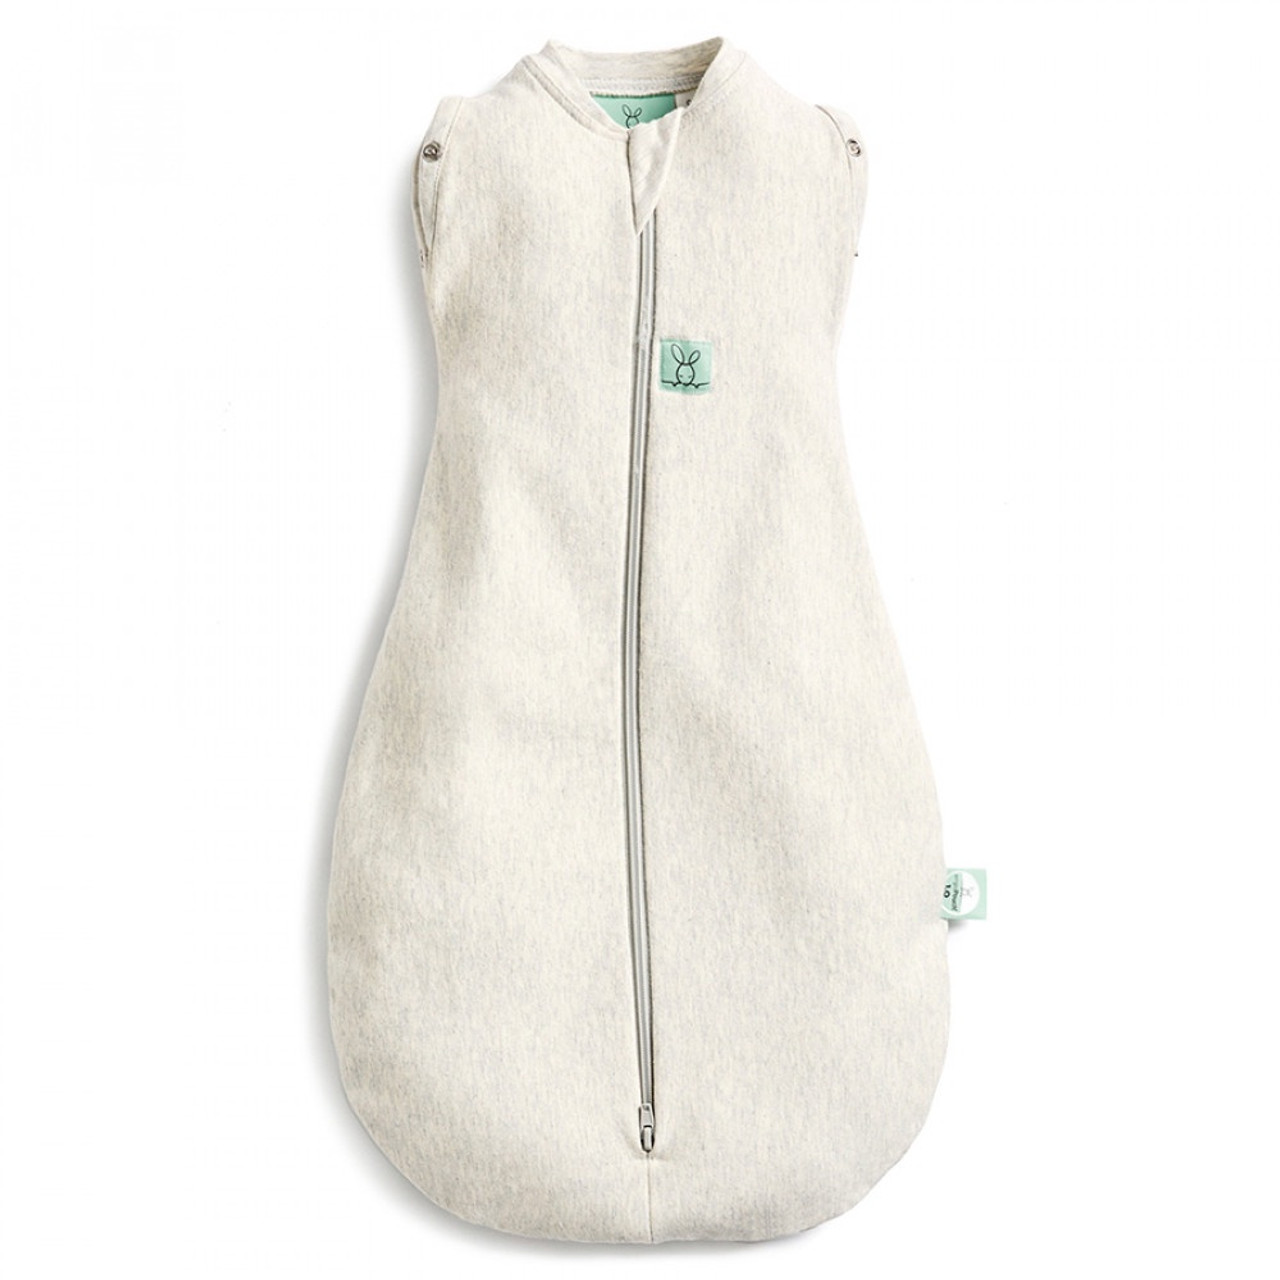 Ergopouch Cocoon Swaddle Bag 1.0 tog 6-12 Months  GREY MARLE at Baby Barn Discounts ErgoPouch cocoon 1.0 tog is an escape-proof swaddle which converts to a sleeping bag.